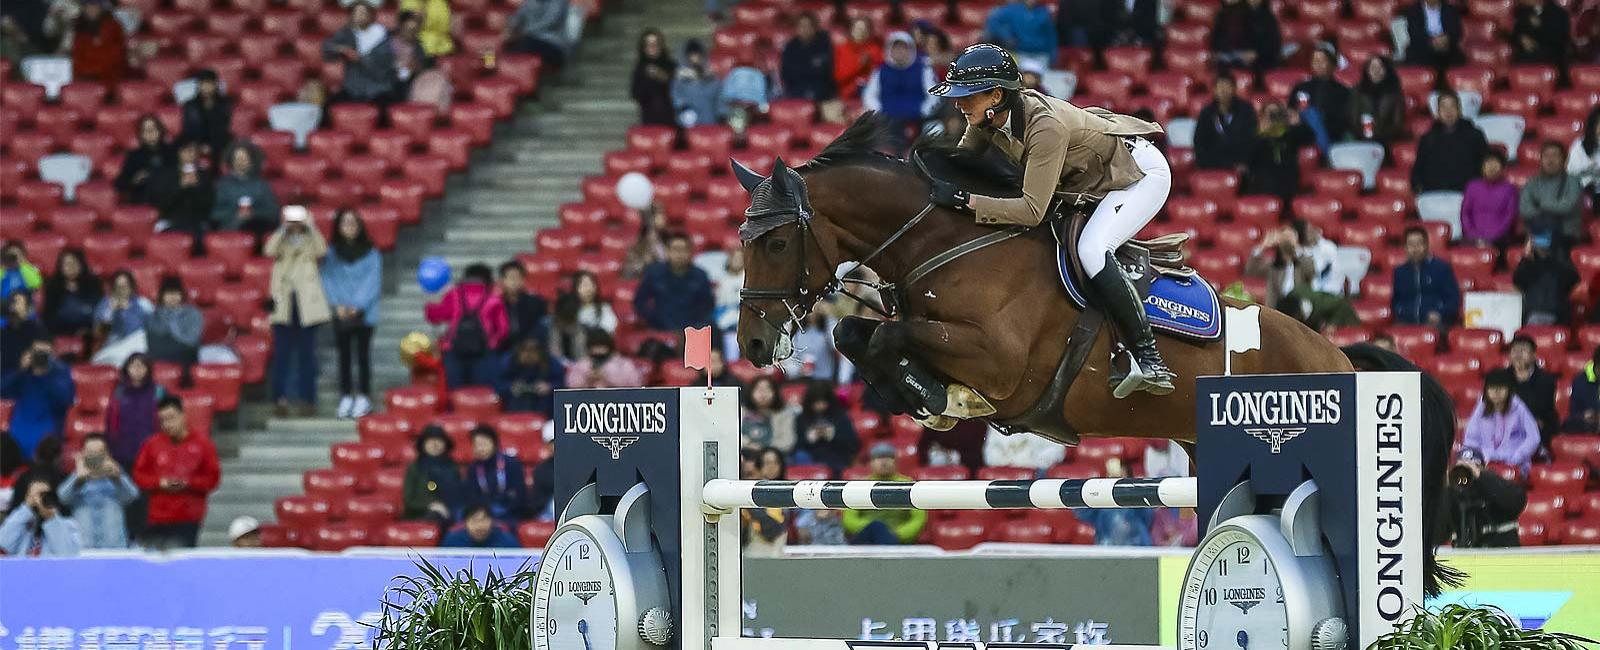 Longines Equestrian Beijing Masters; Salto a ostacoli; 2019